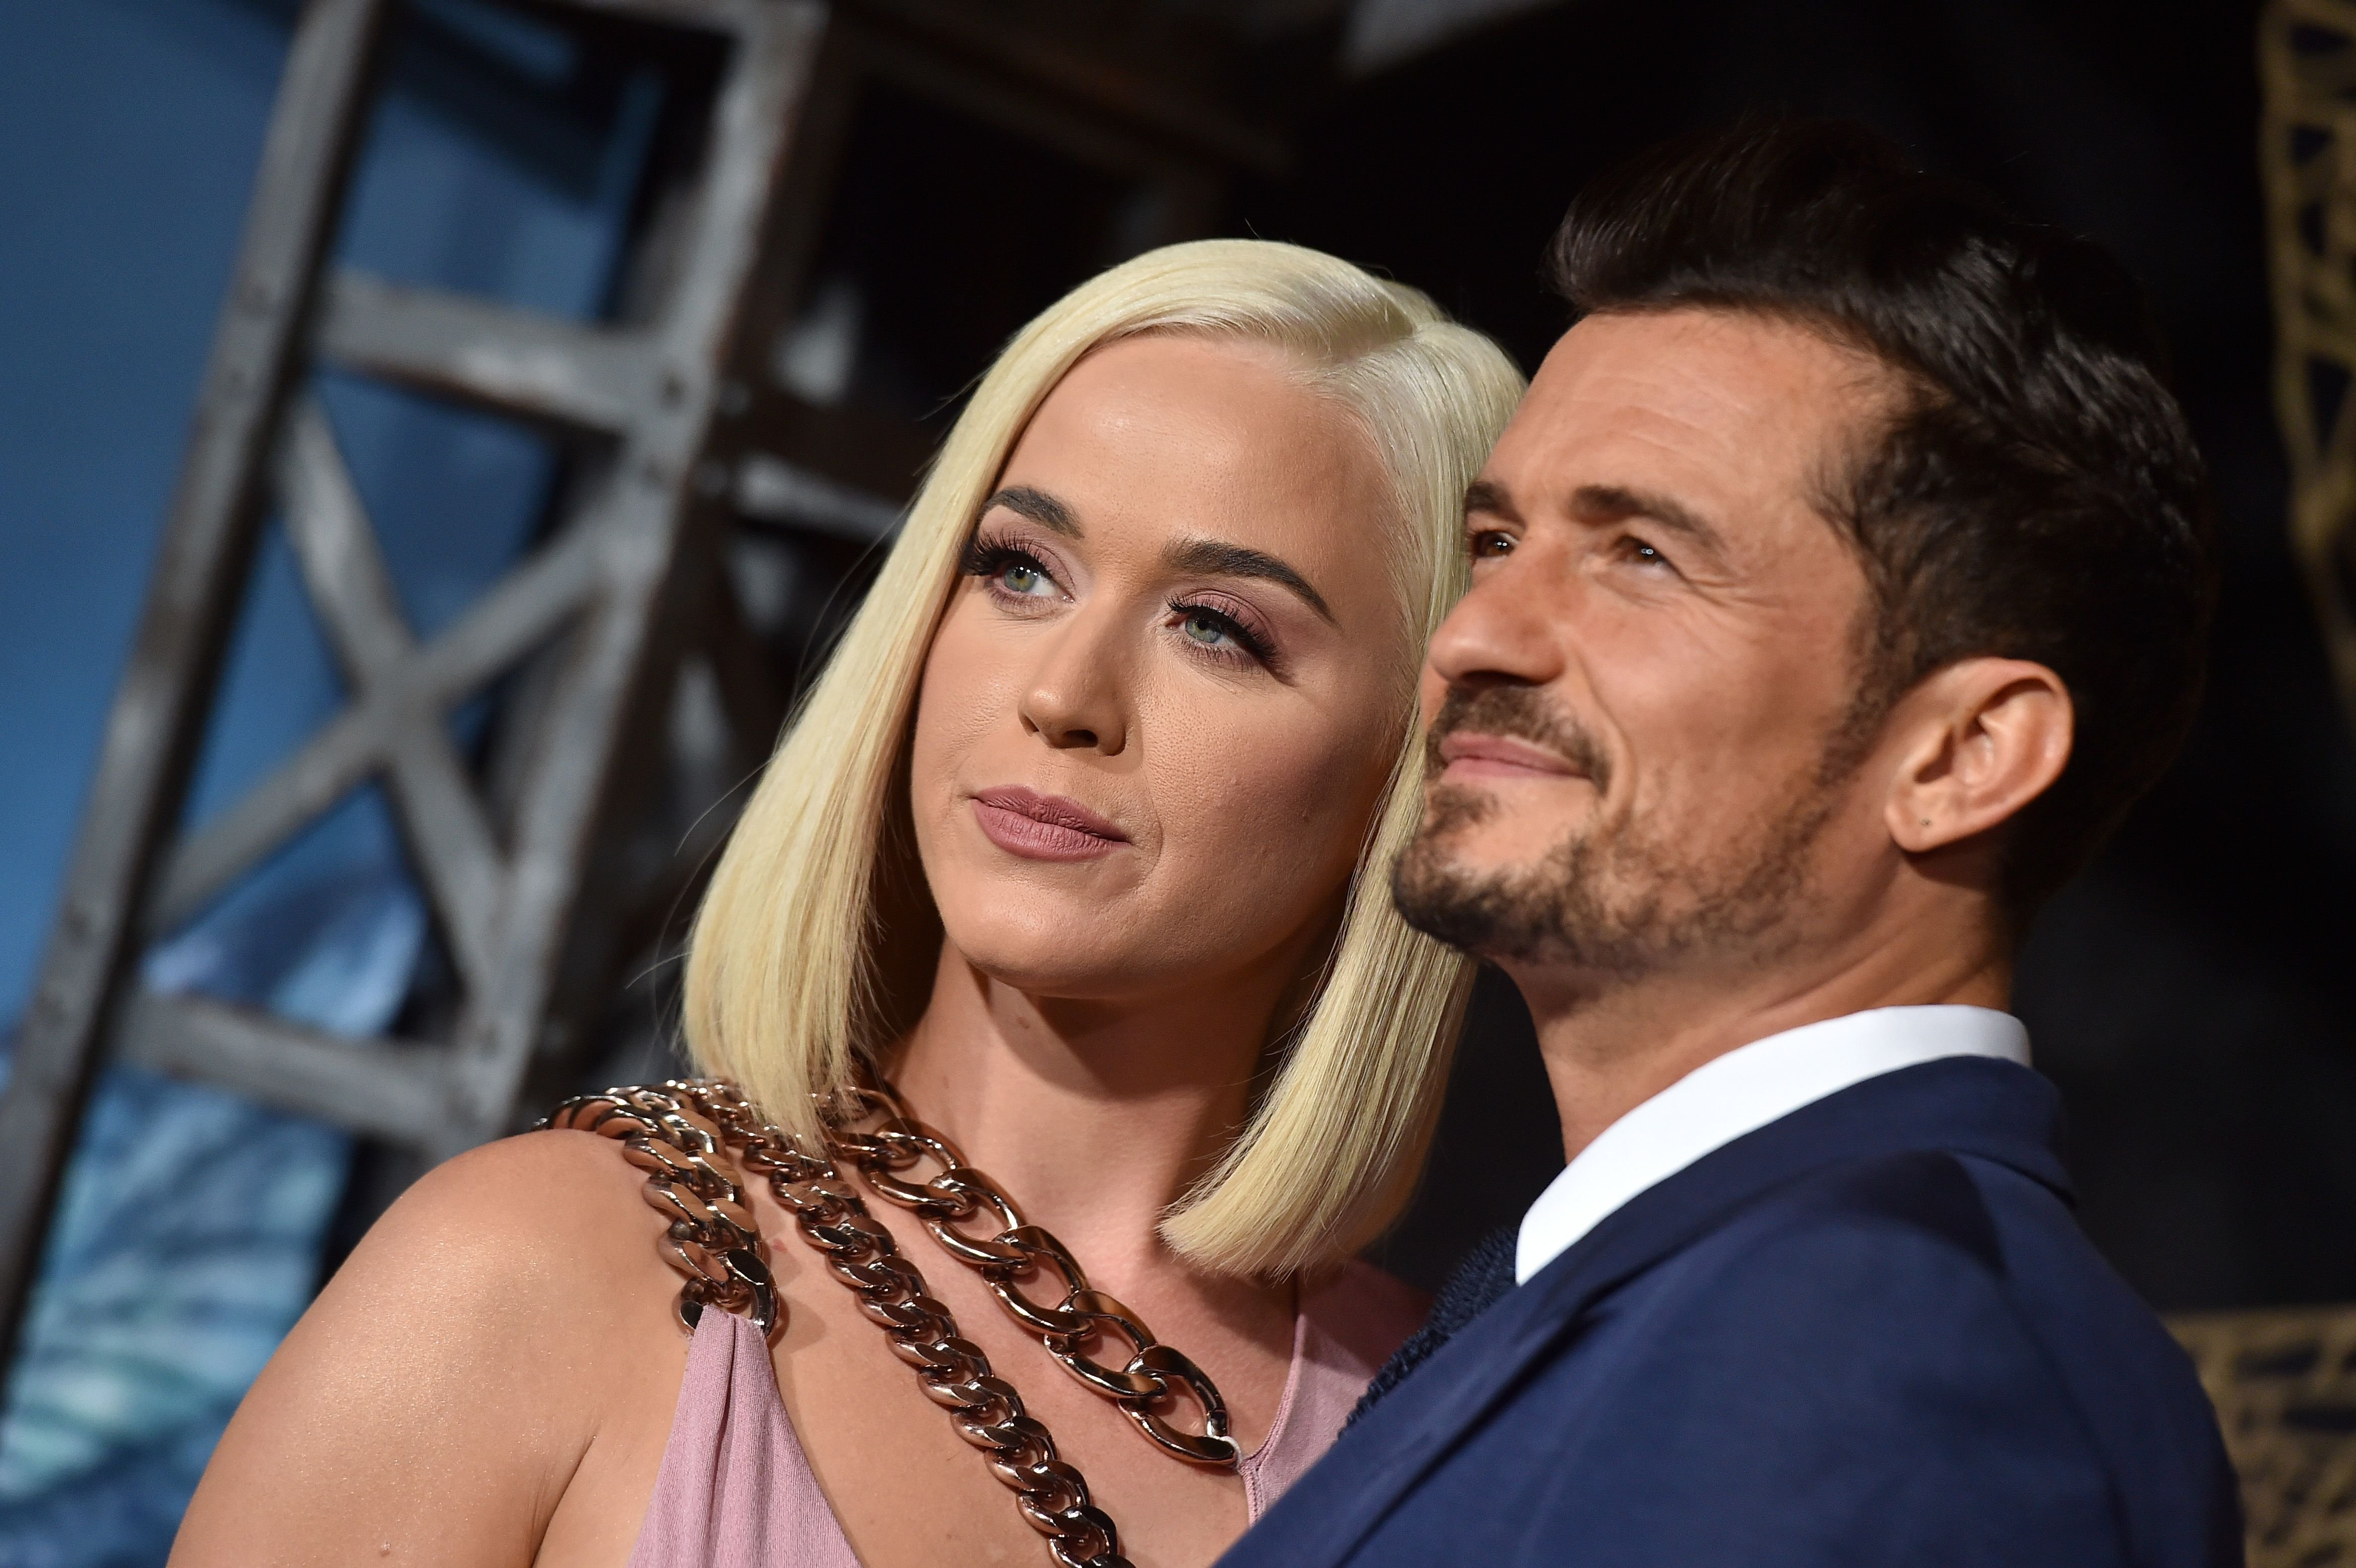 """Katy Perry and Orlando Bloom at the LA premiere of Amazon's """"Carnival Row"""" at TCL Chinese Theatre on August 21, 2019 in Hollywood, California 